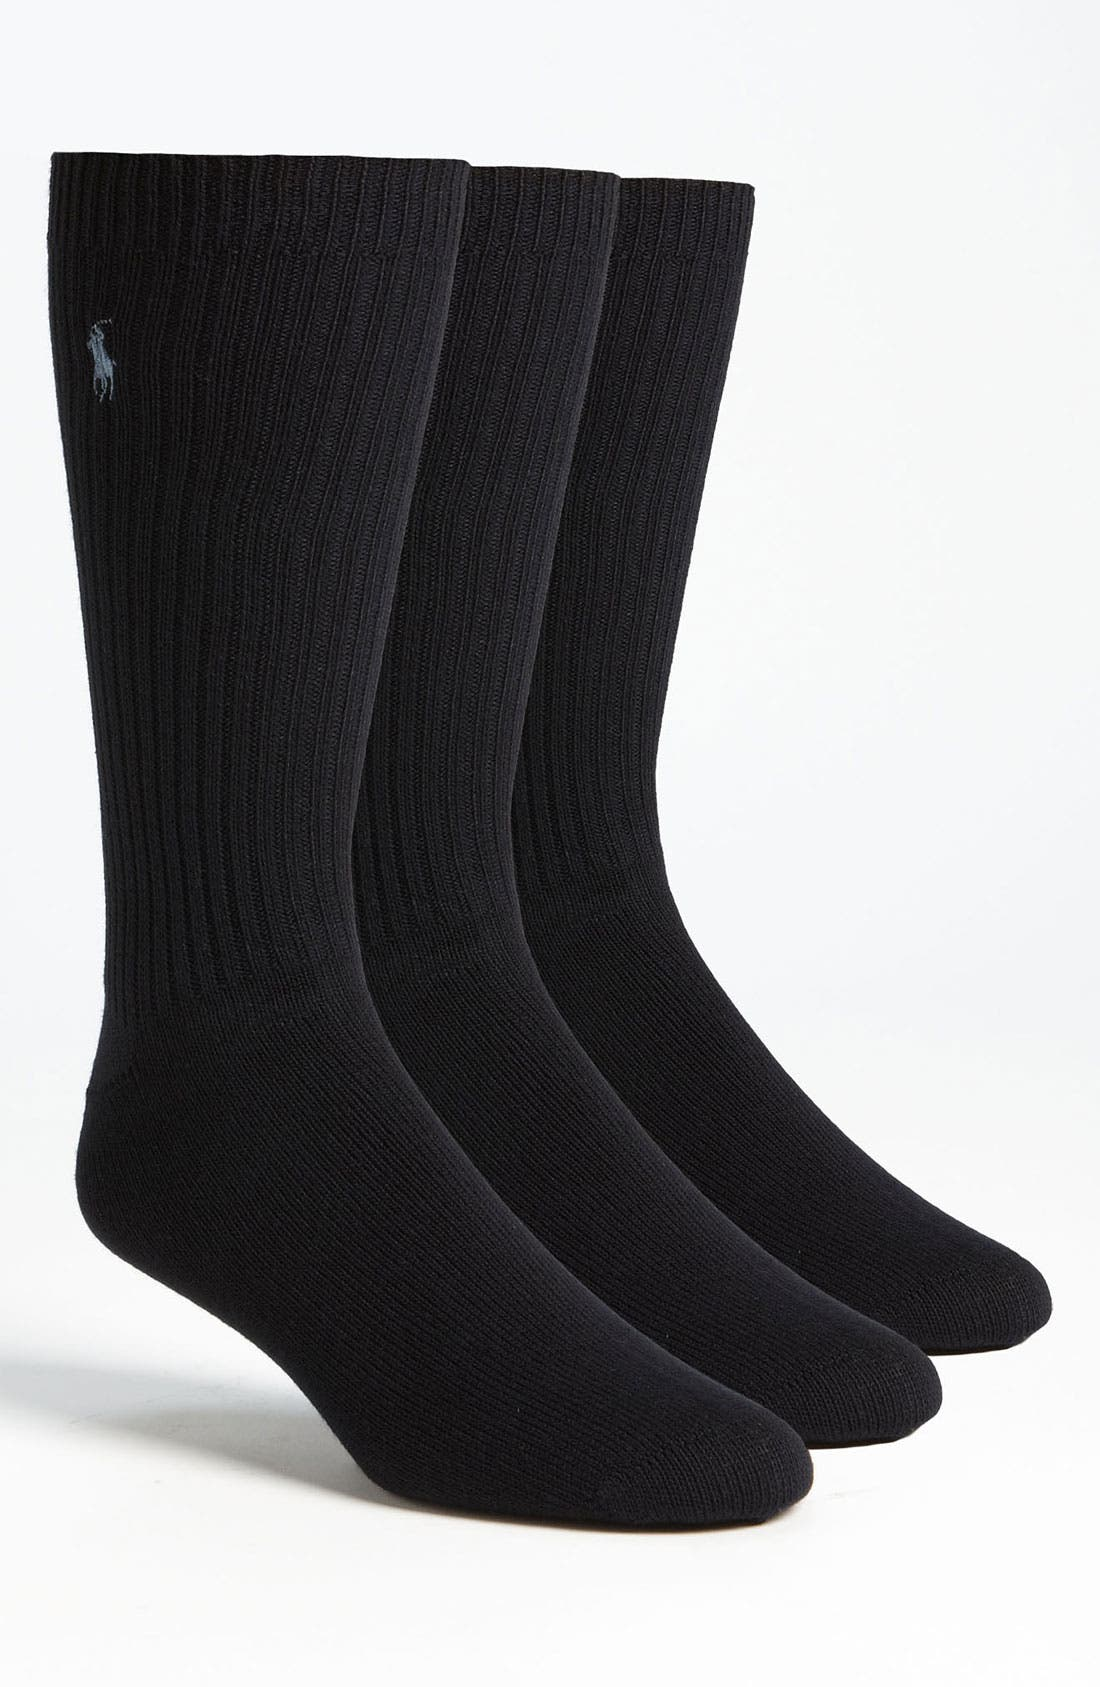 Alternate Image 1 Selected - Polo Ralph Lauren Ribbed Crew Socks (3-Pack)